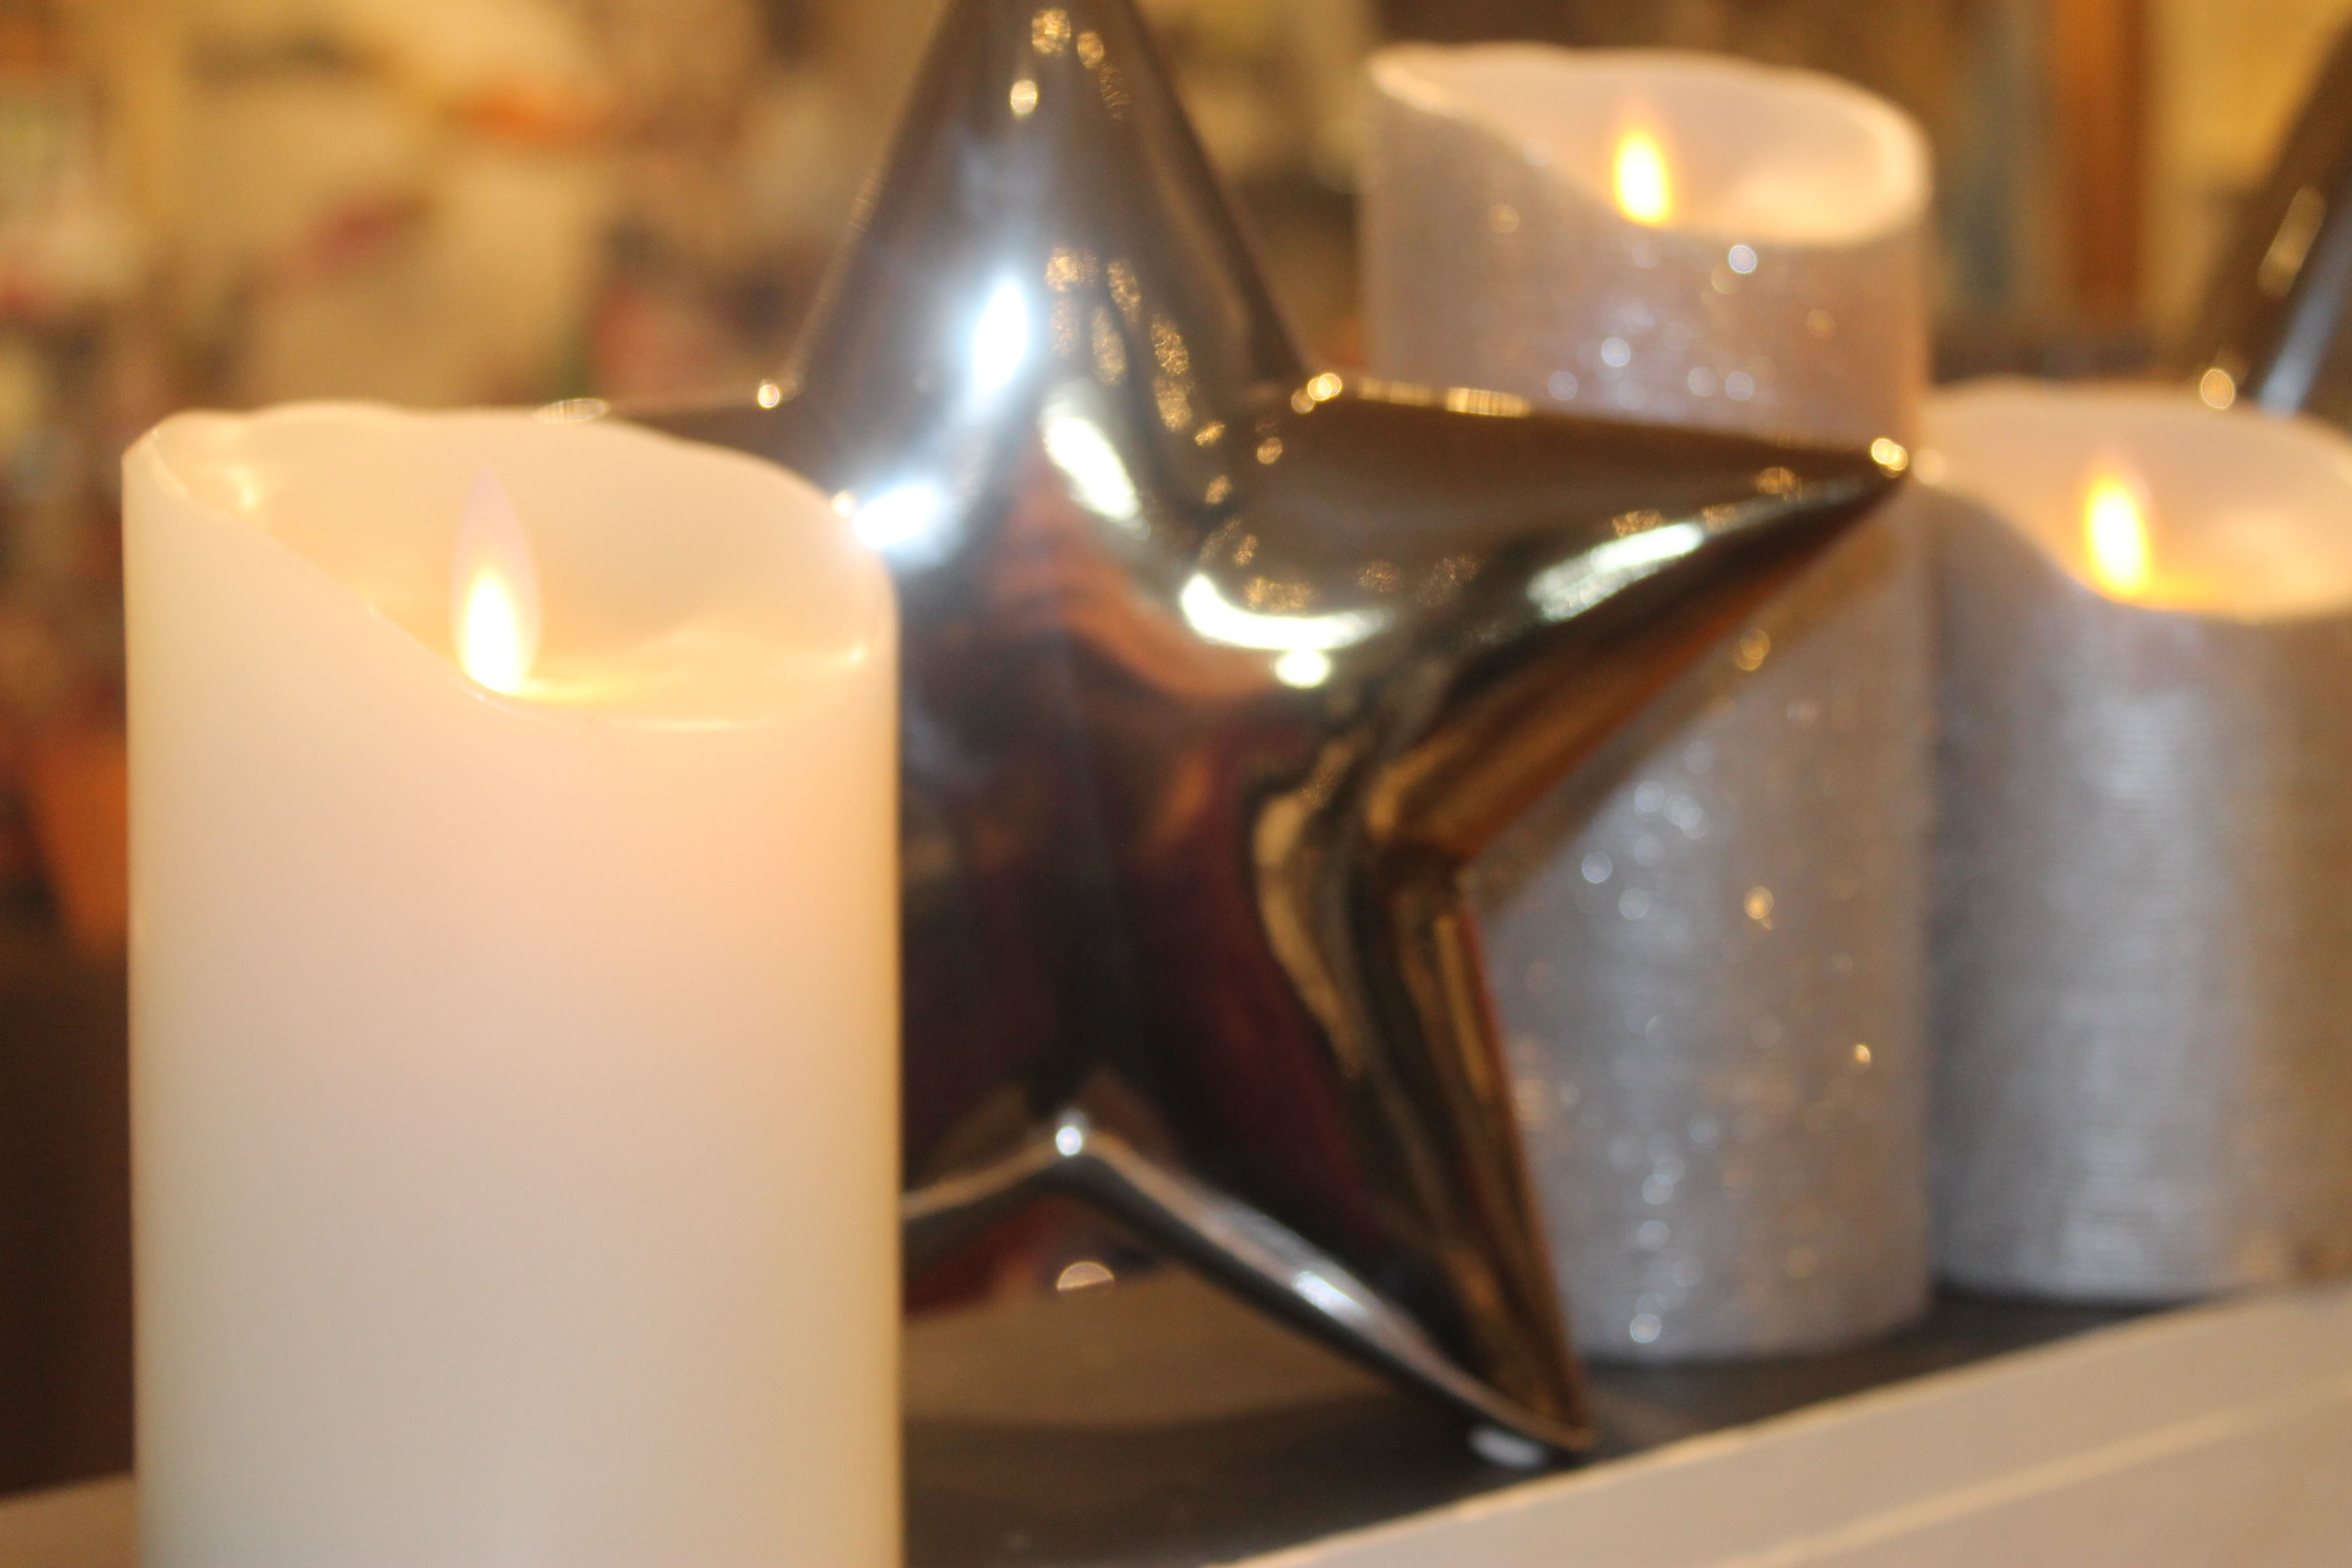 Reallite candles have such a realistic look nobody will ever know they're not! No flame, no drips no worries!